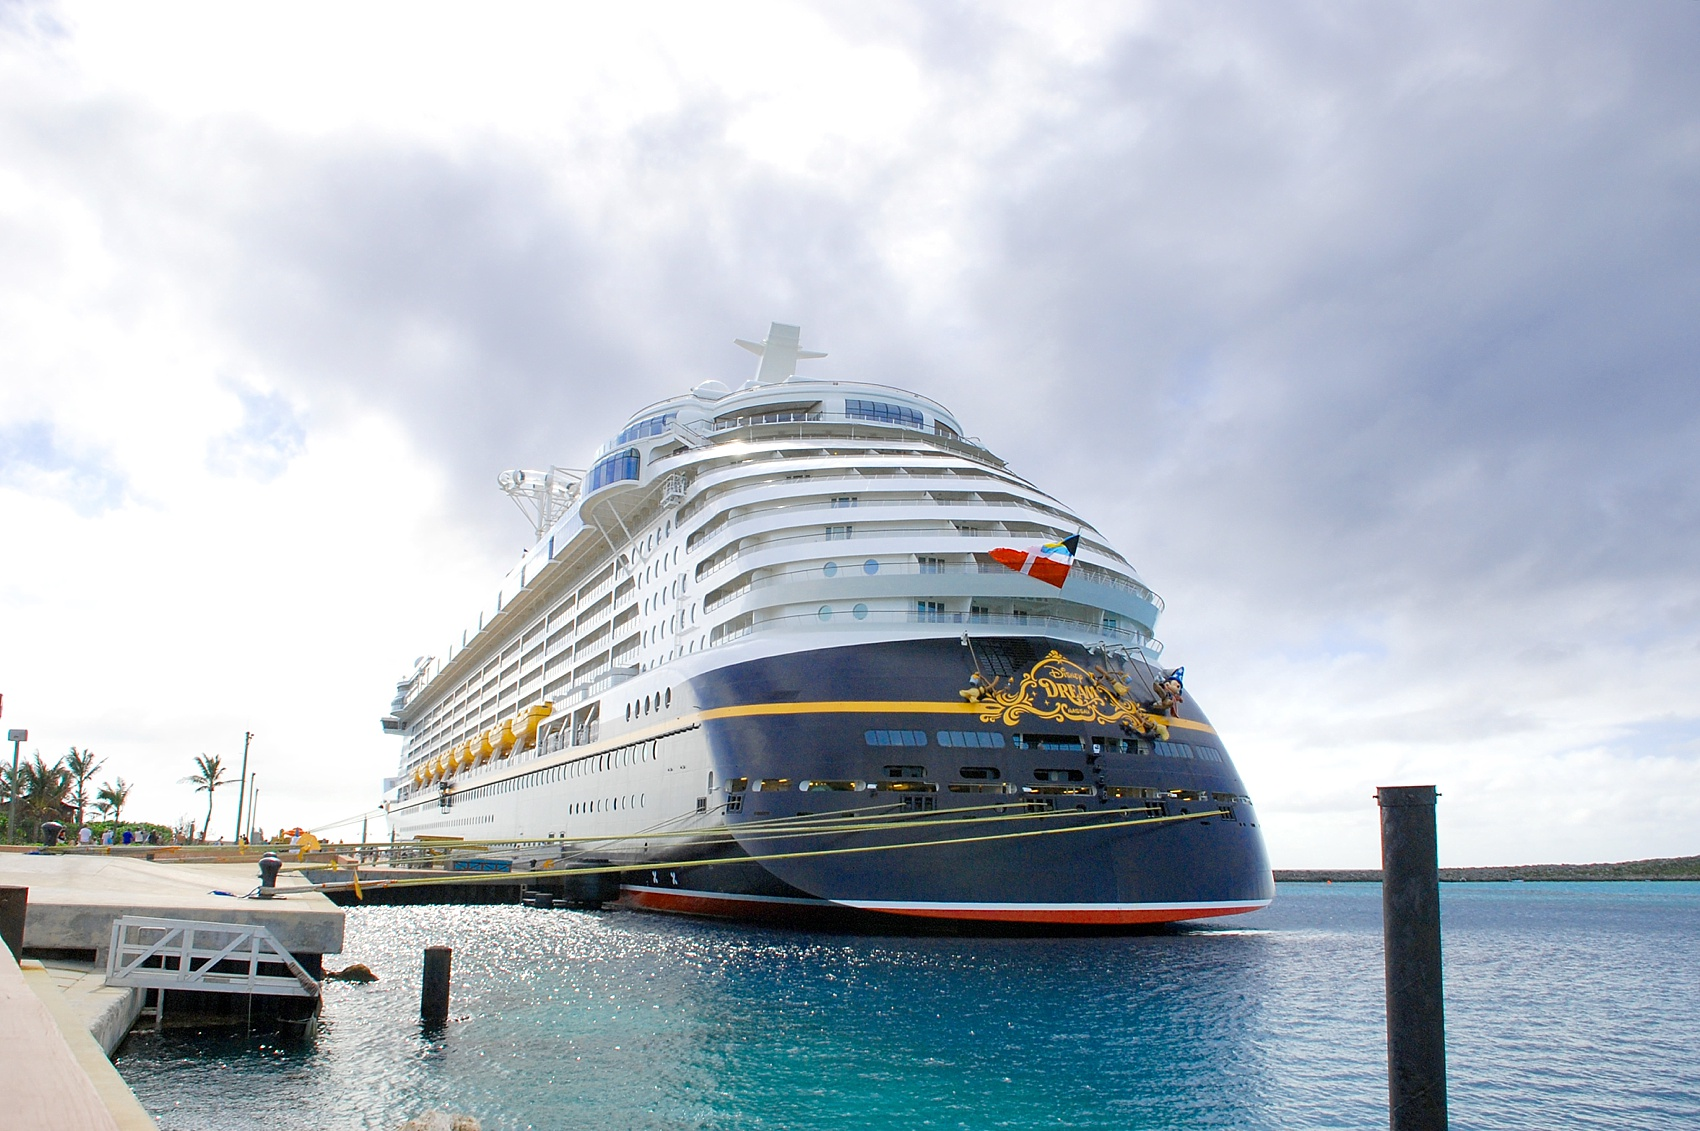 Disney Cruise Line, Disney Dream Wedding, Castaway Cay. DCL images by Mikkel Paige Photography. Shipped docked.